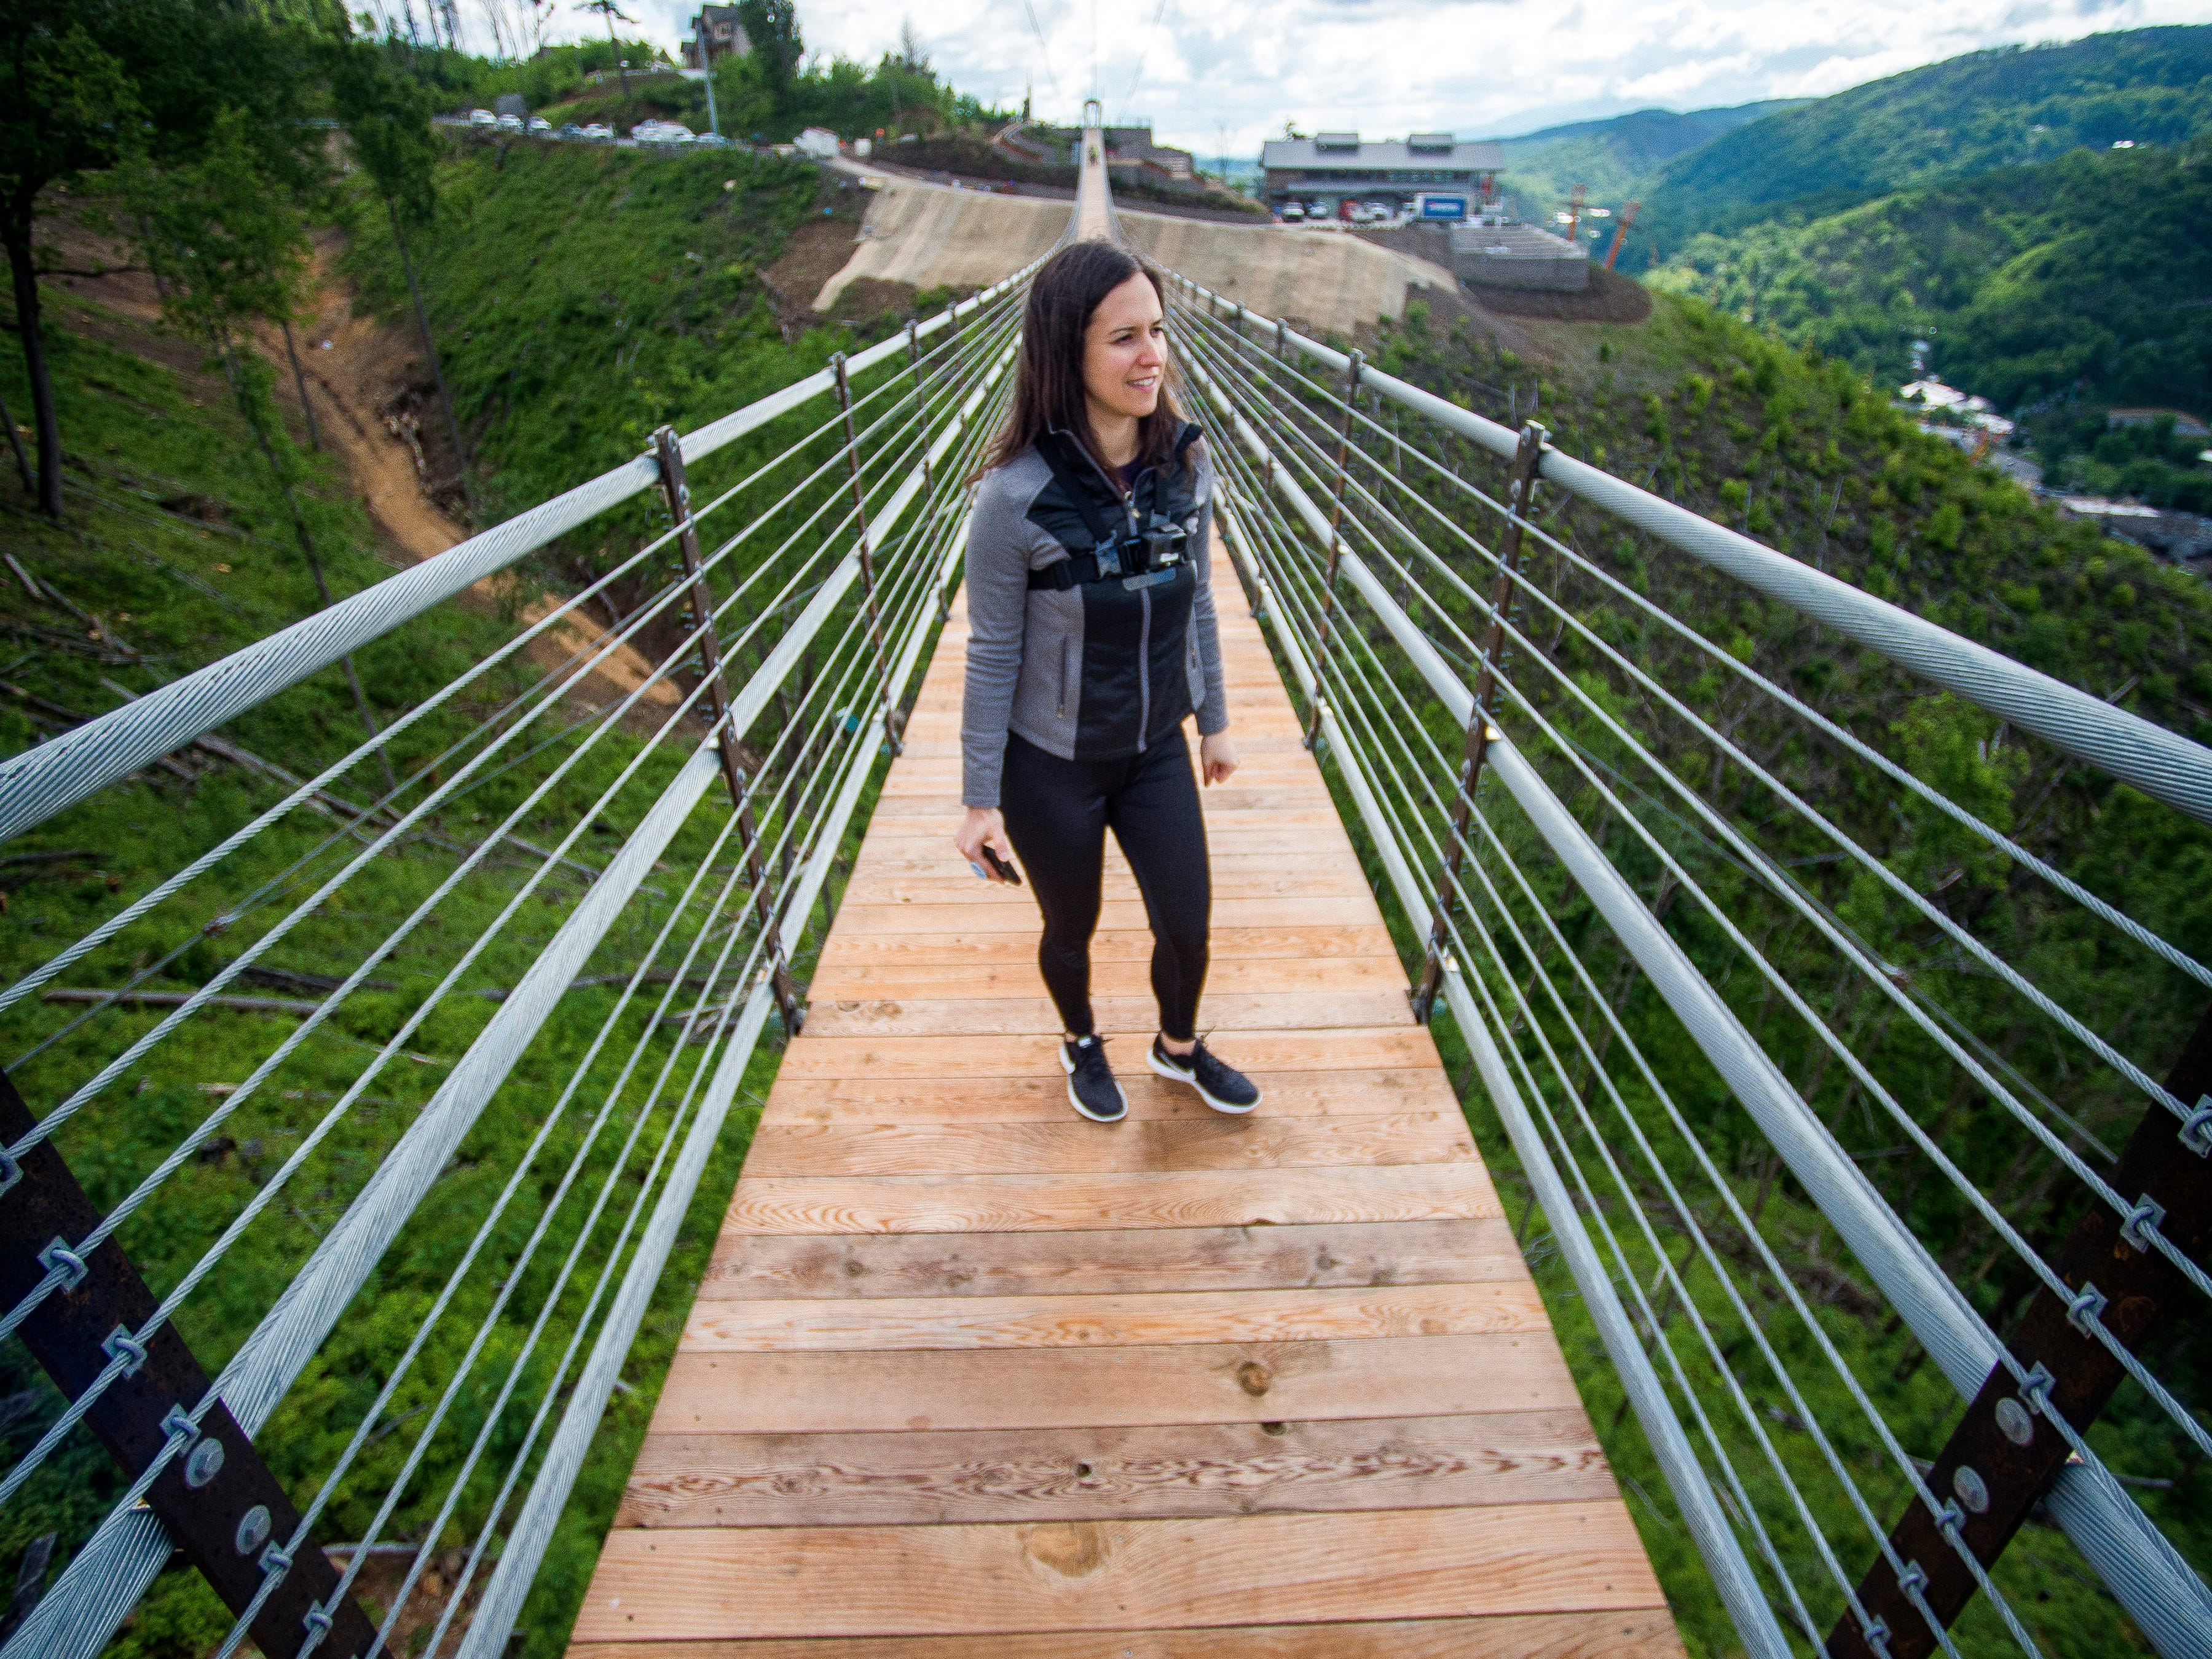 Knoxville News Sentinel reporter Brenna Mcdermott takes in the view from the Gatlinburg SkyBridge, North America's longest pedestrian suspension bridge, on Tuesday, May 14, 2019.